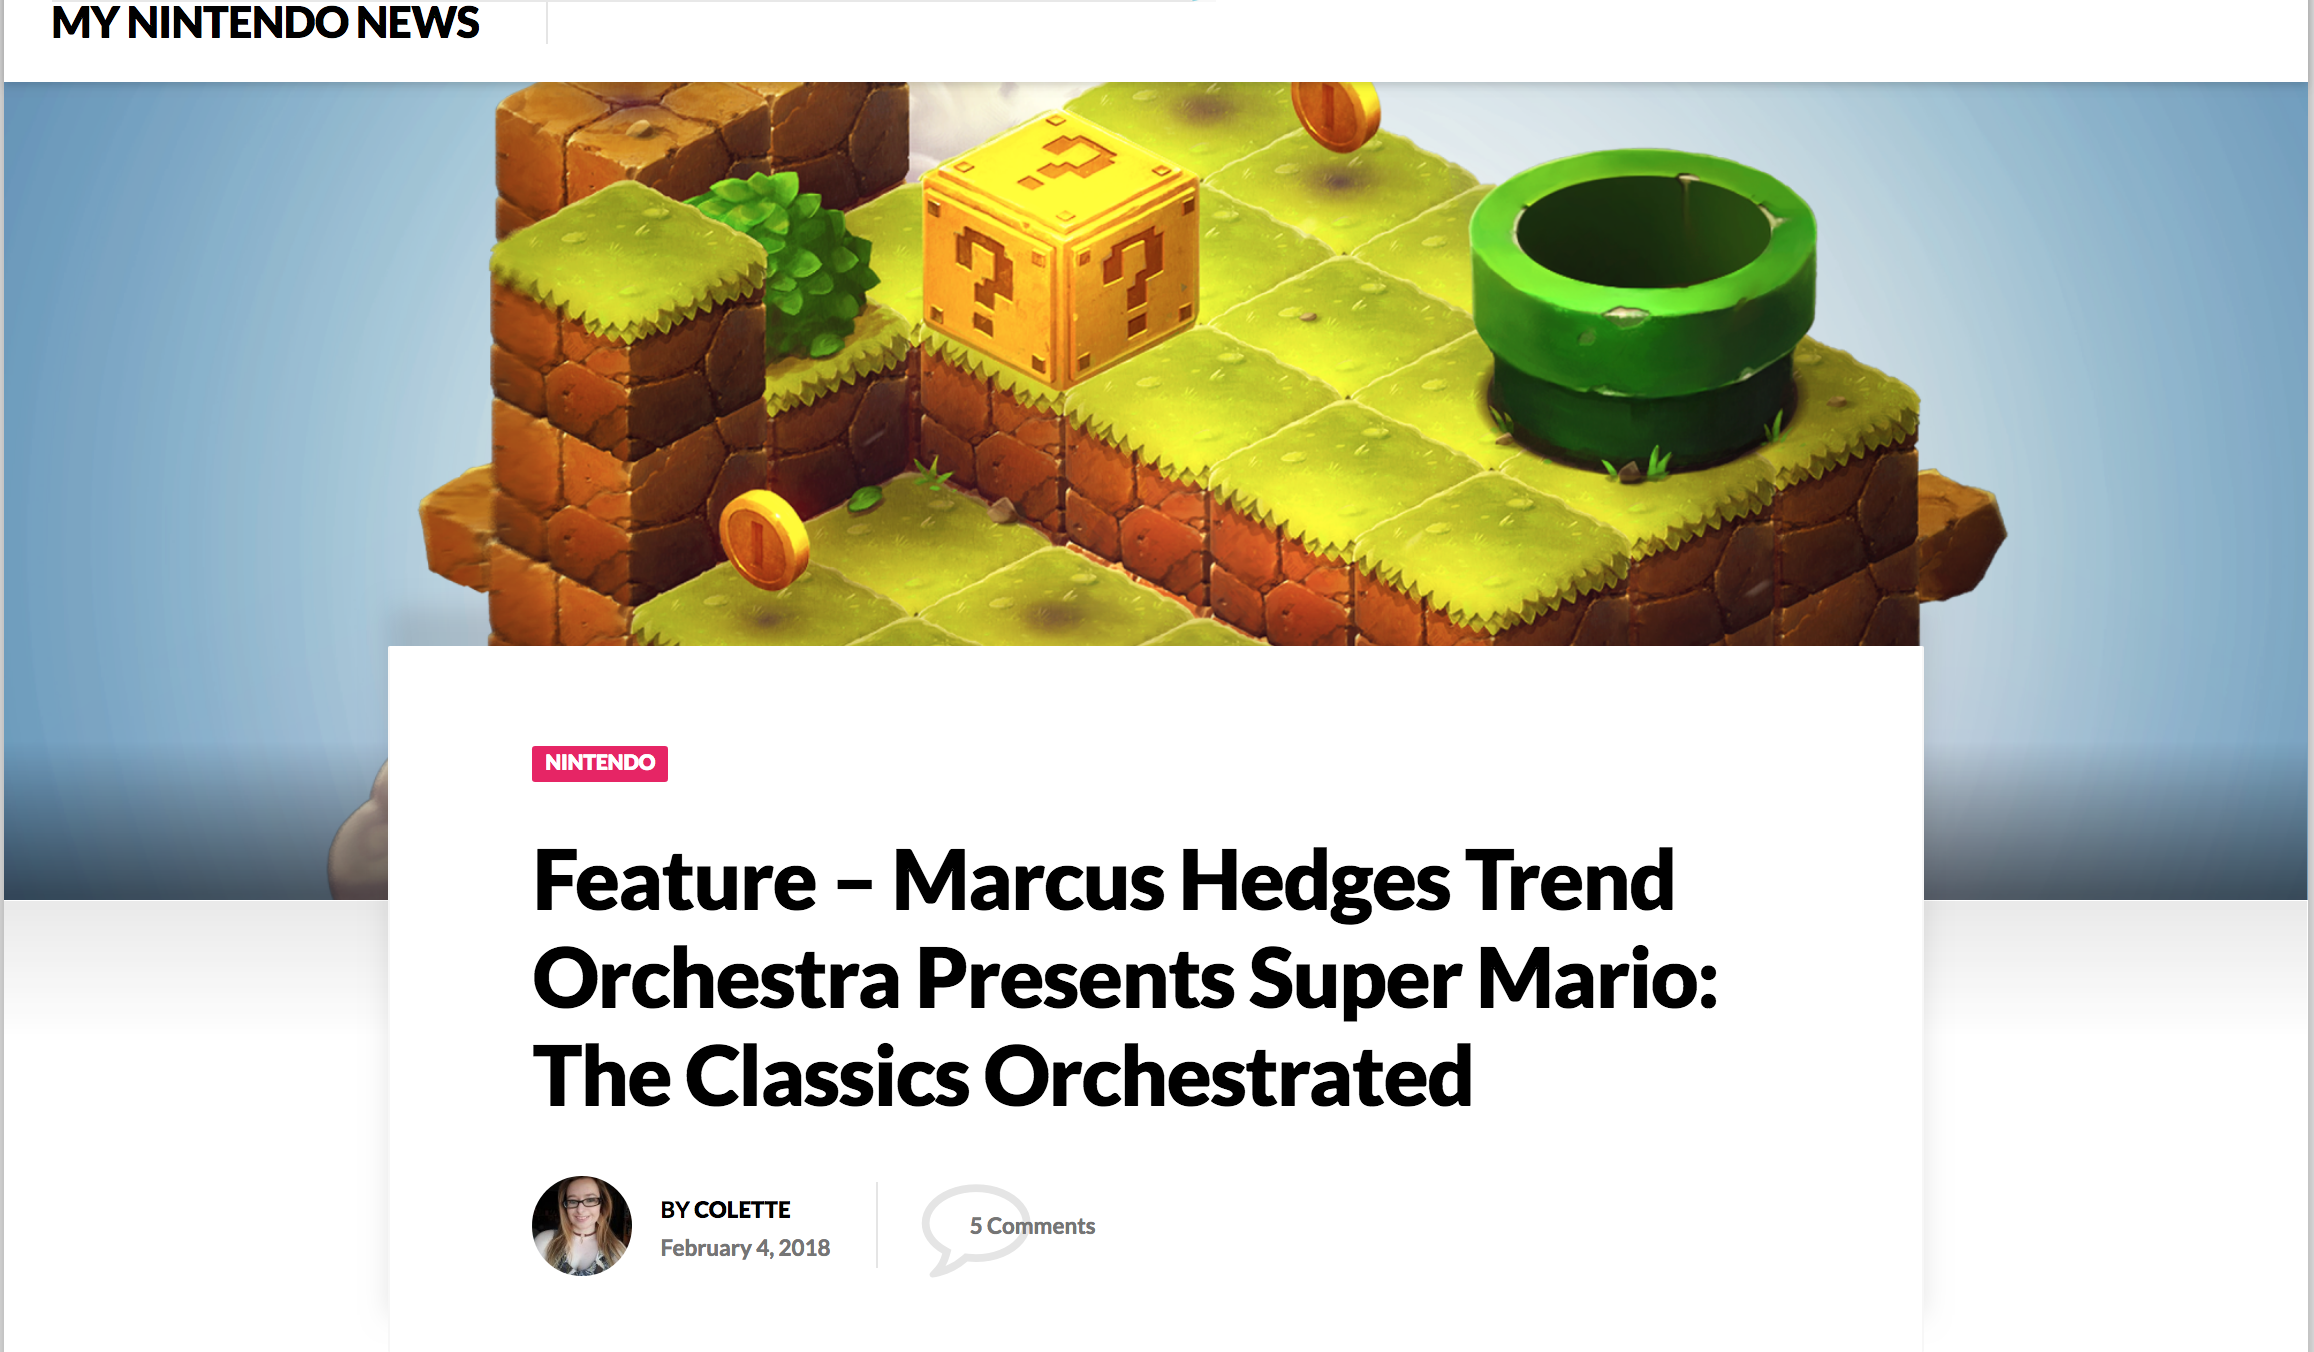 My Nintendo News: - 'Featuring some of the greatest thematic and overworld tracks from the first Super Mario Bros through to Super Mario 64, Trend Orchestra's rendition is bold, hitting all the right notes to evoke the pleasurable platforming nostalgia from the '80s and '90s.'